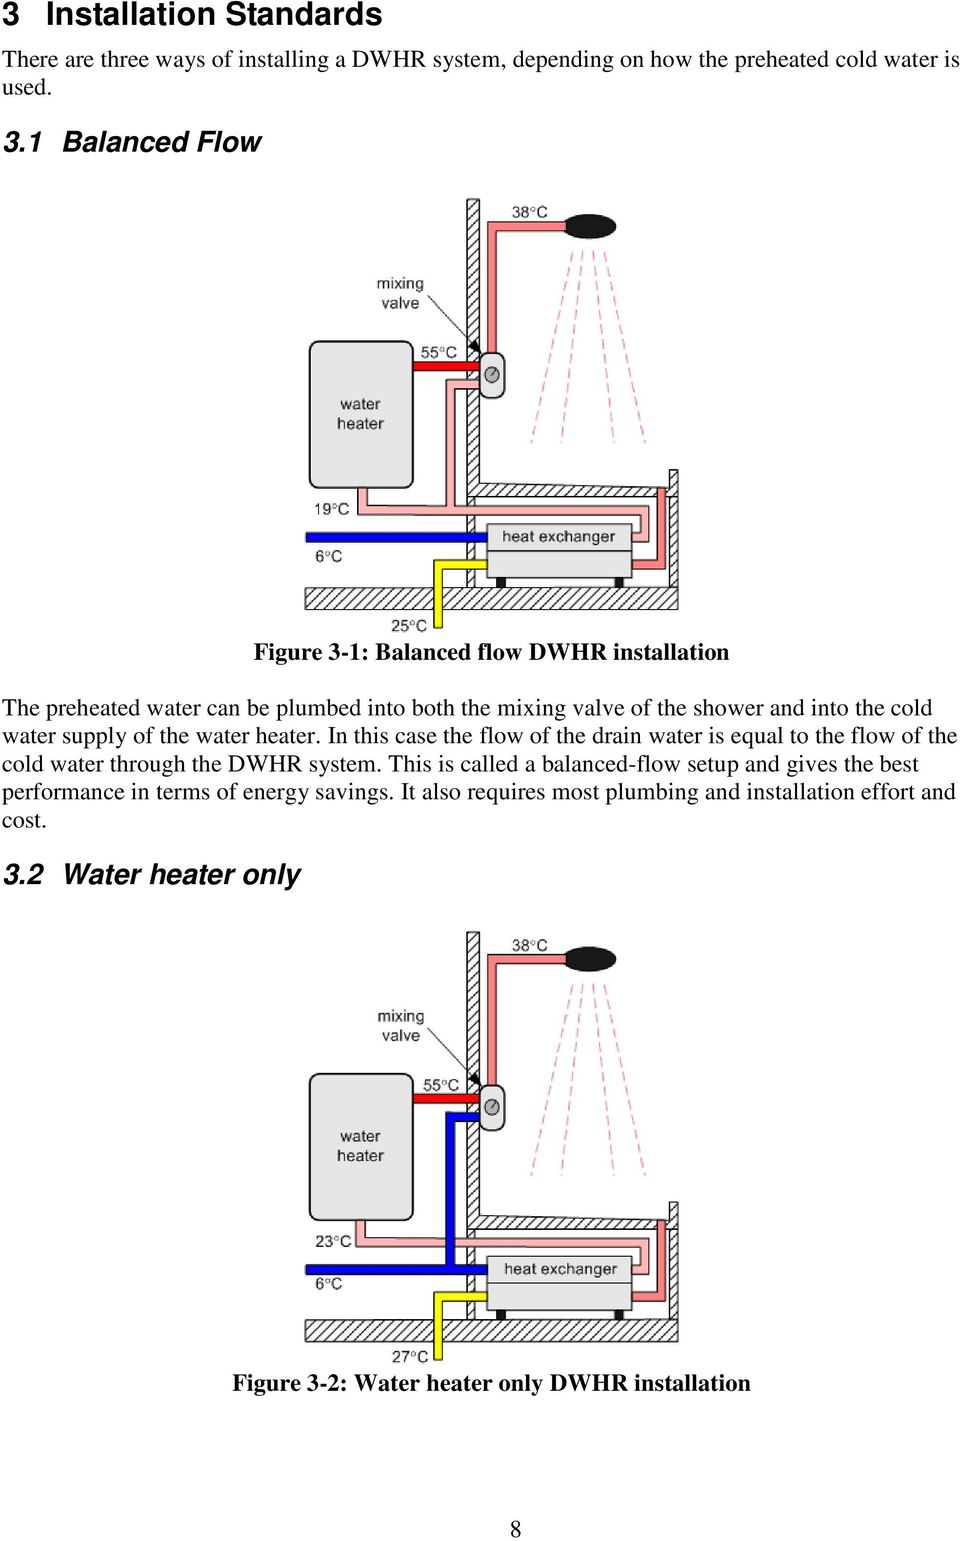 supply of the water heater. In this case the flow of the drain water is equal to the flow of the cold water through the DWHR system.